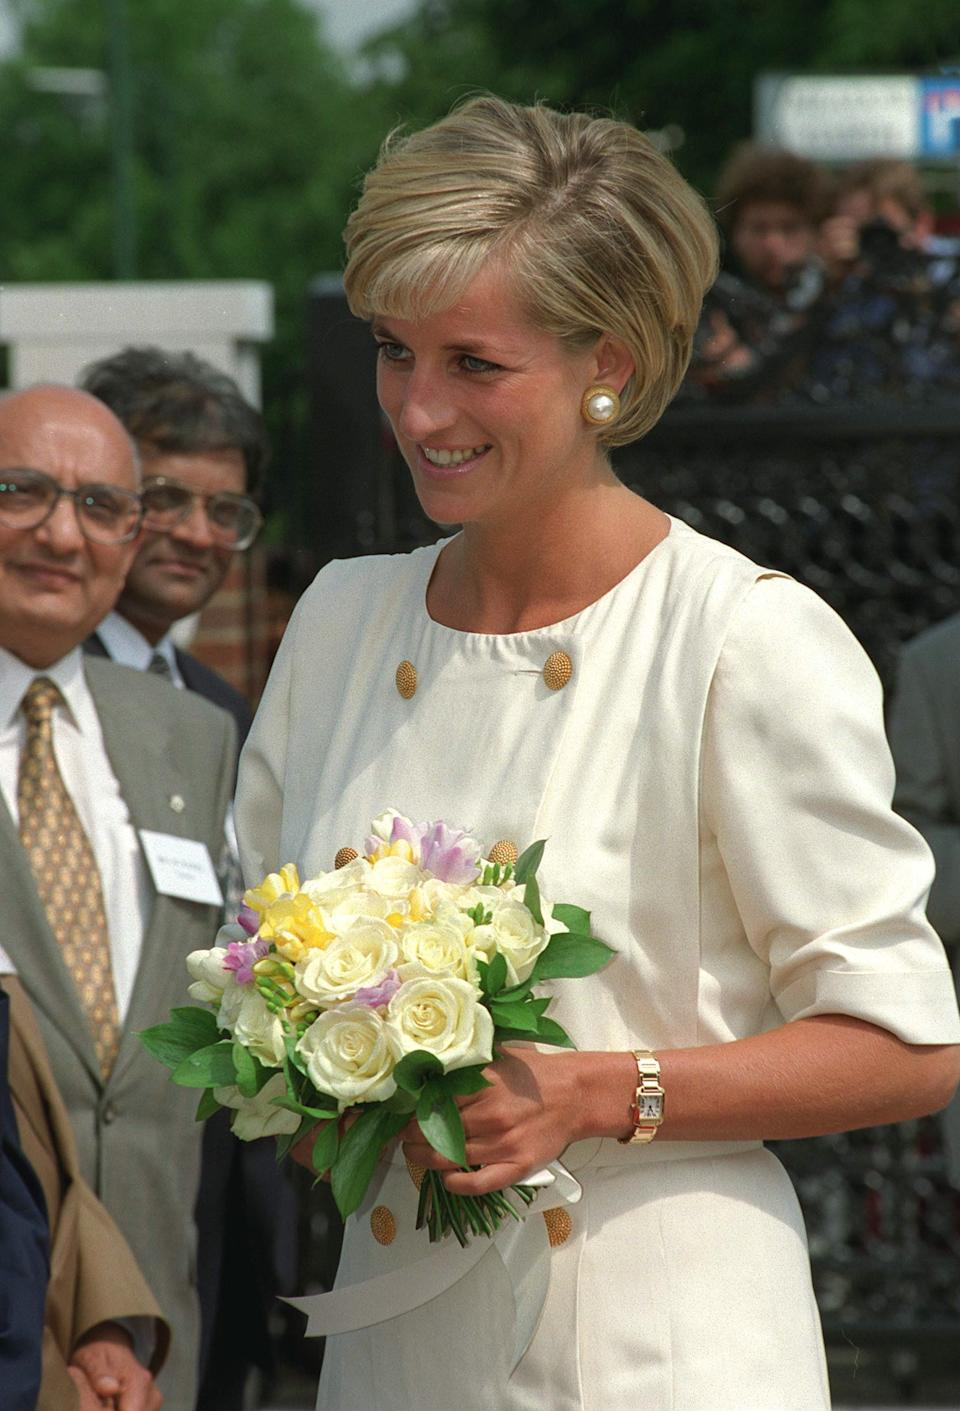 Prince Diana was pictured wearing what appears to be the same Cartier watch shortly before her death in 1997. (Getty Images)